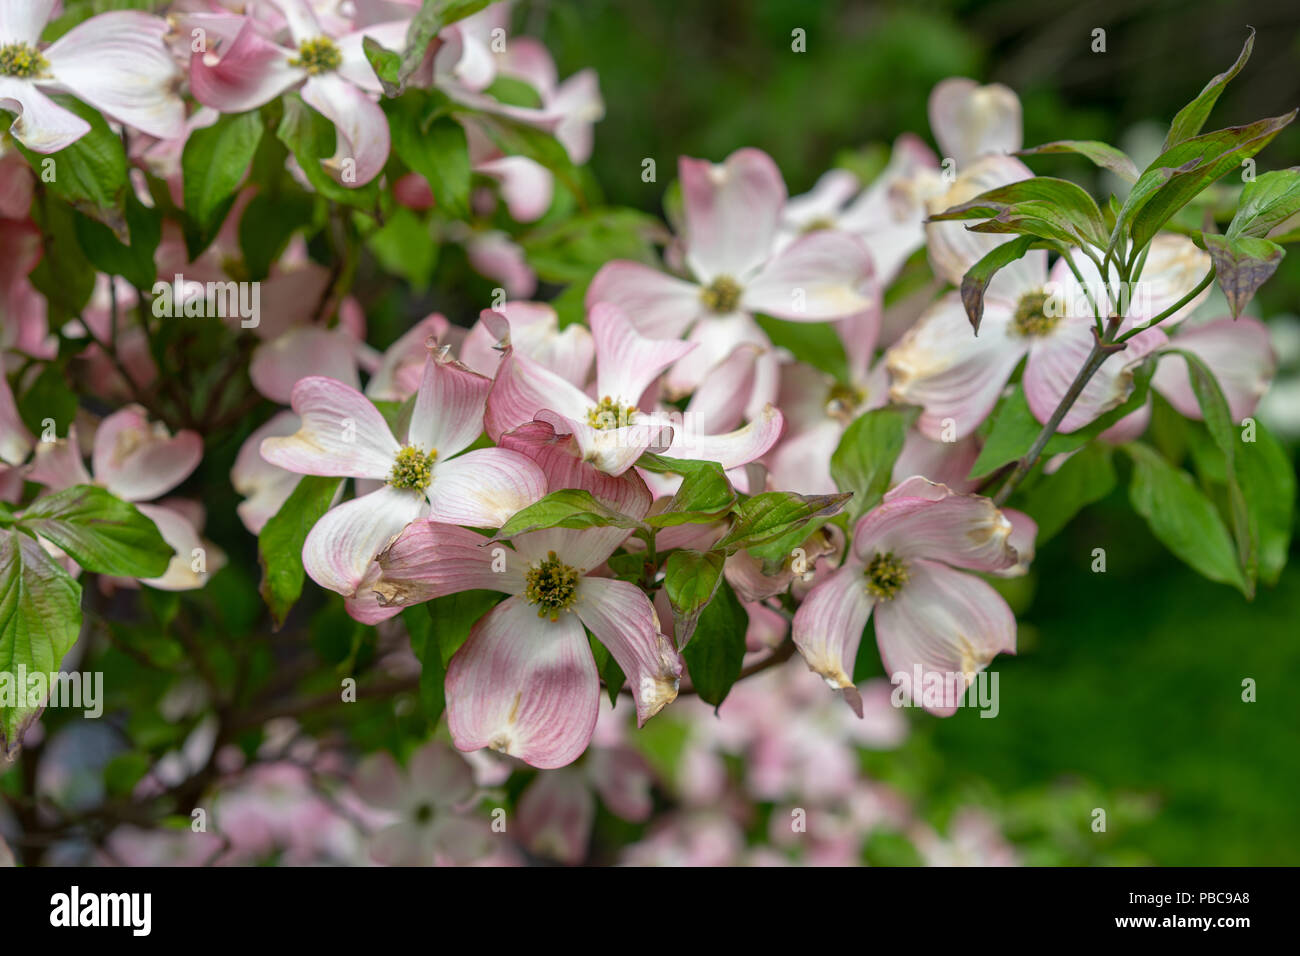 A Close Up View Of Pink Dogwood Flowers Cornus Florida Rubra From